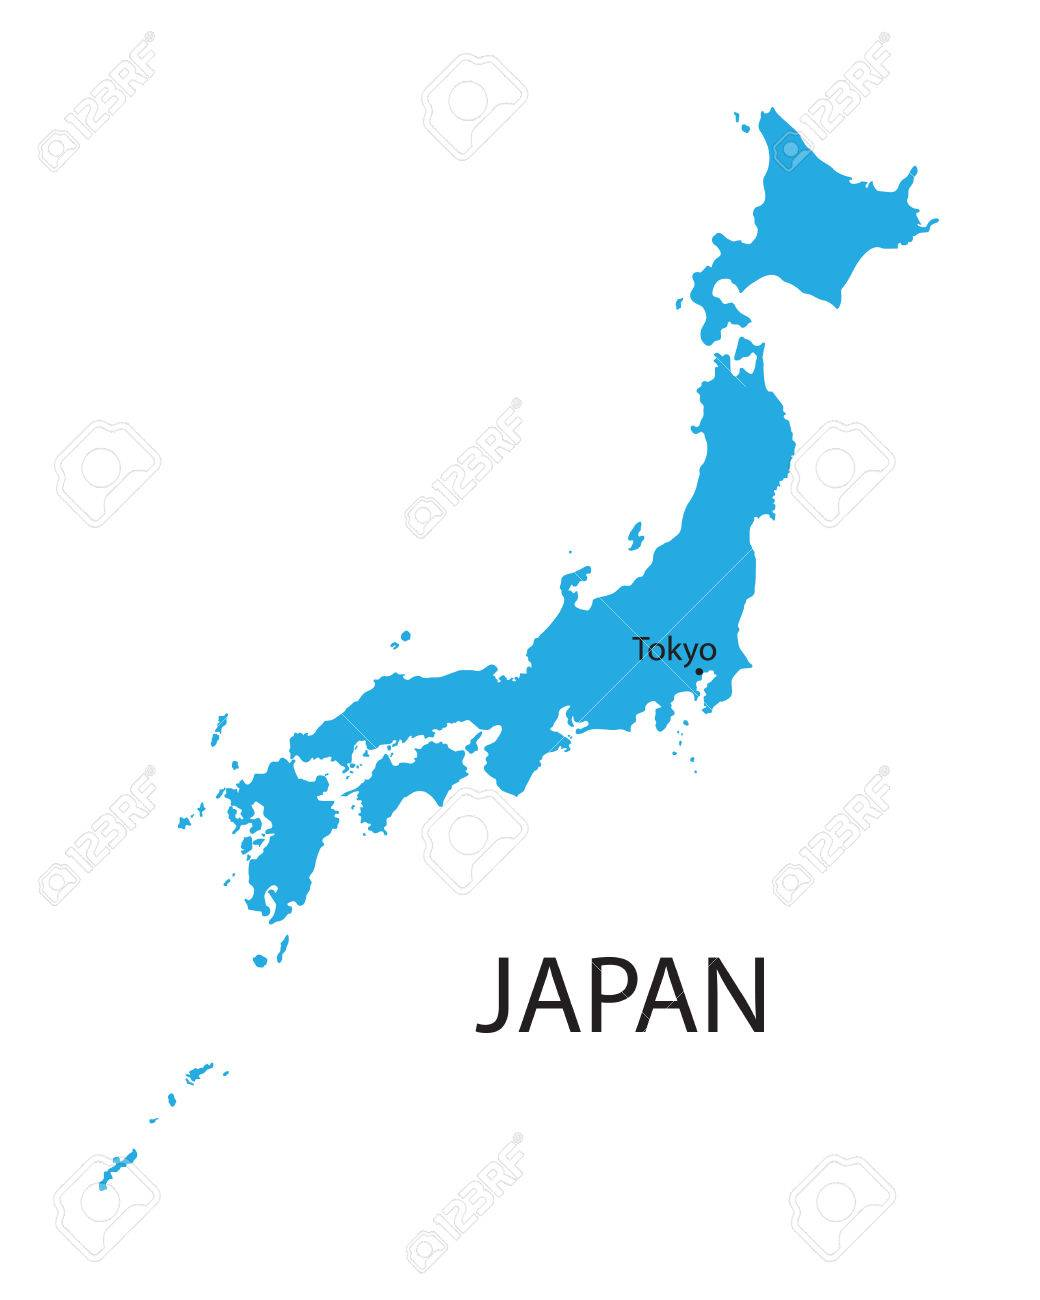 Blue Map Of Japan With Indication Of Tokyo Royalty Free Cliparts